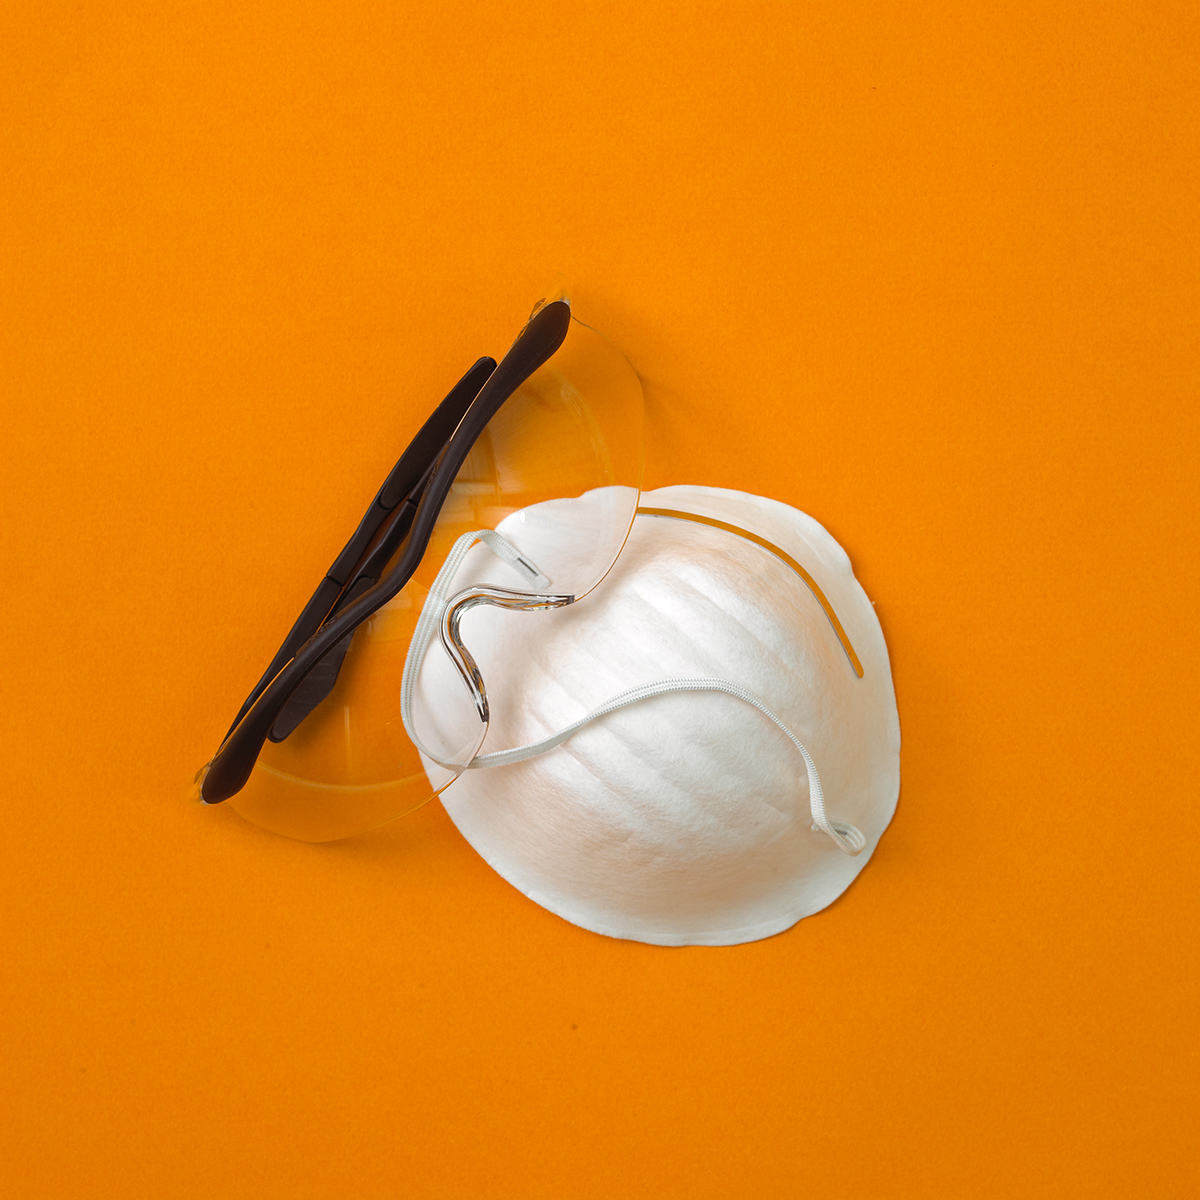 dust mask and safety glasses on orange background